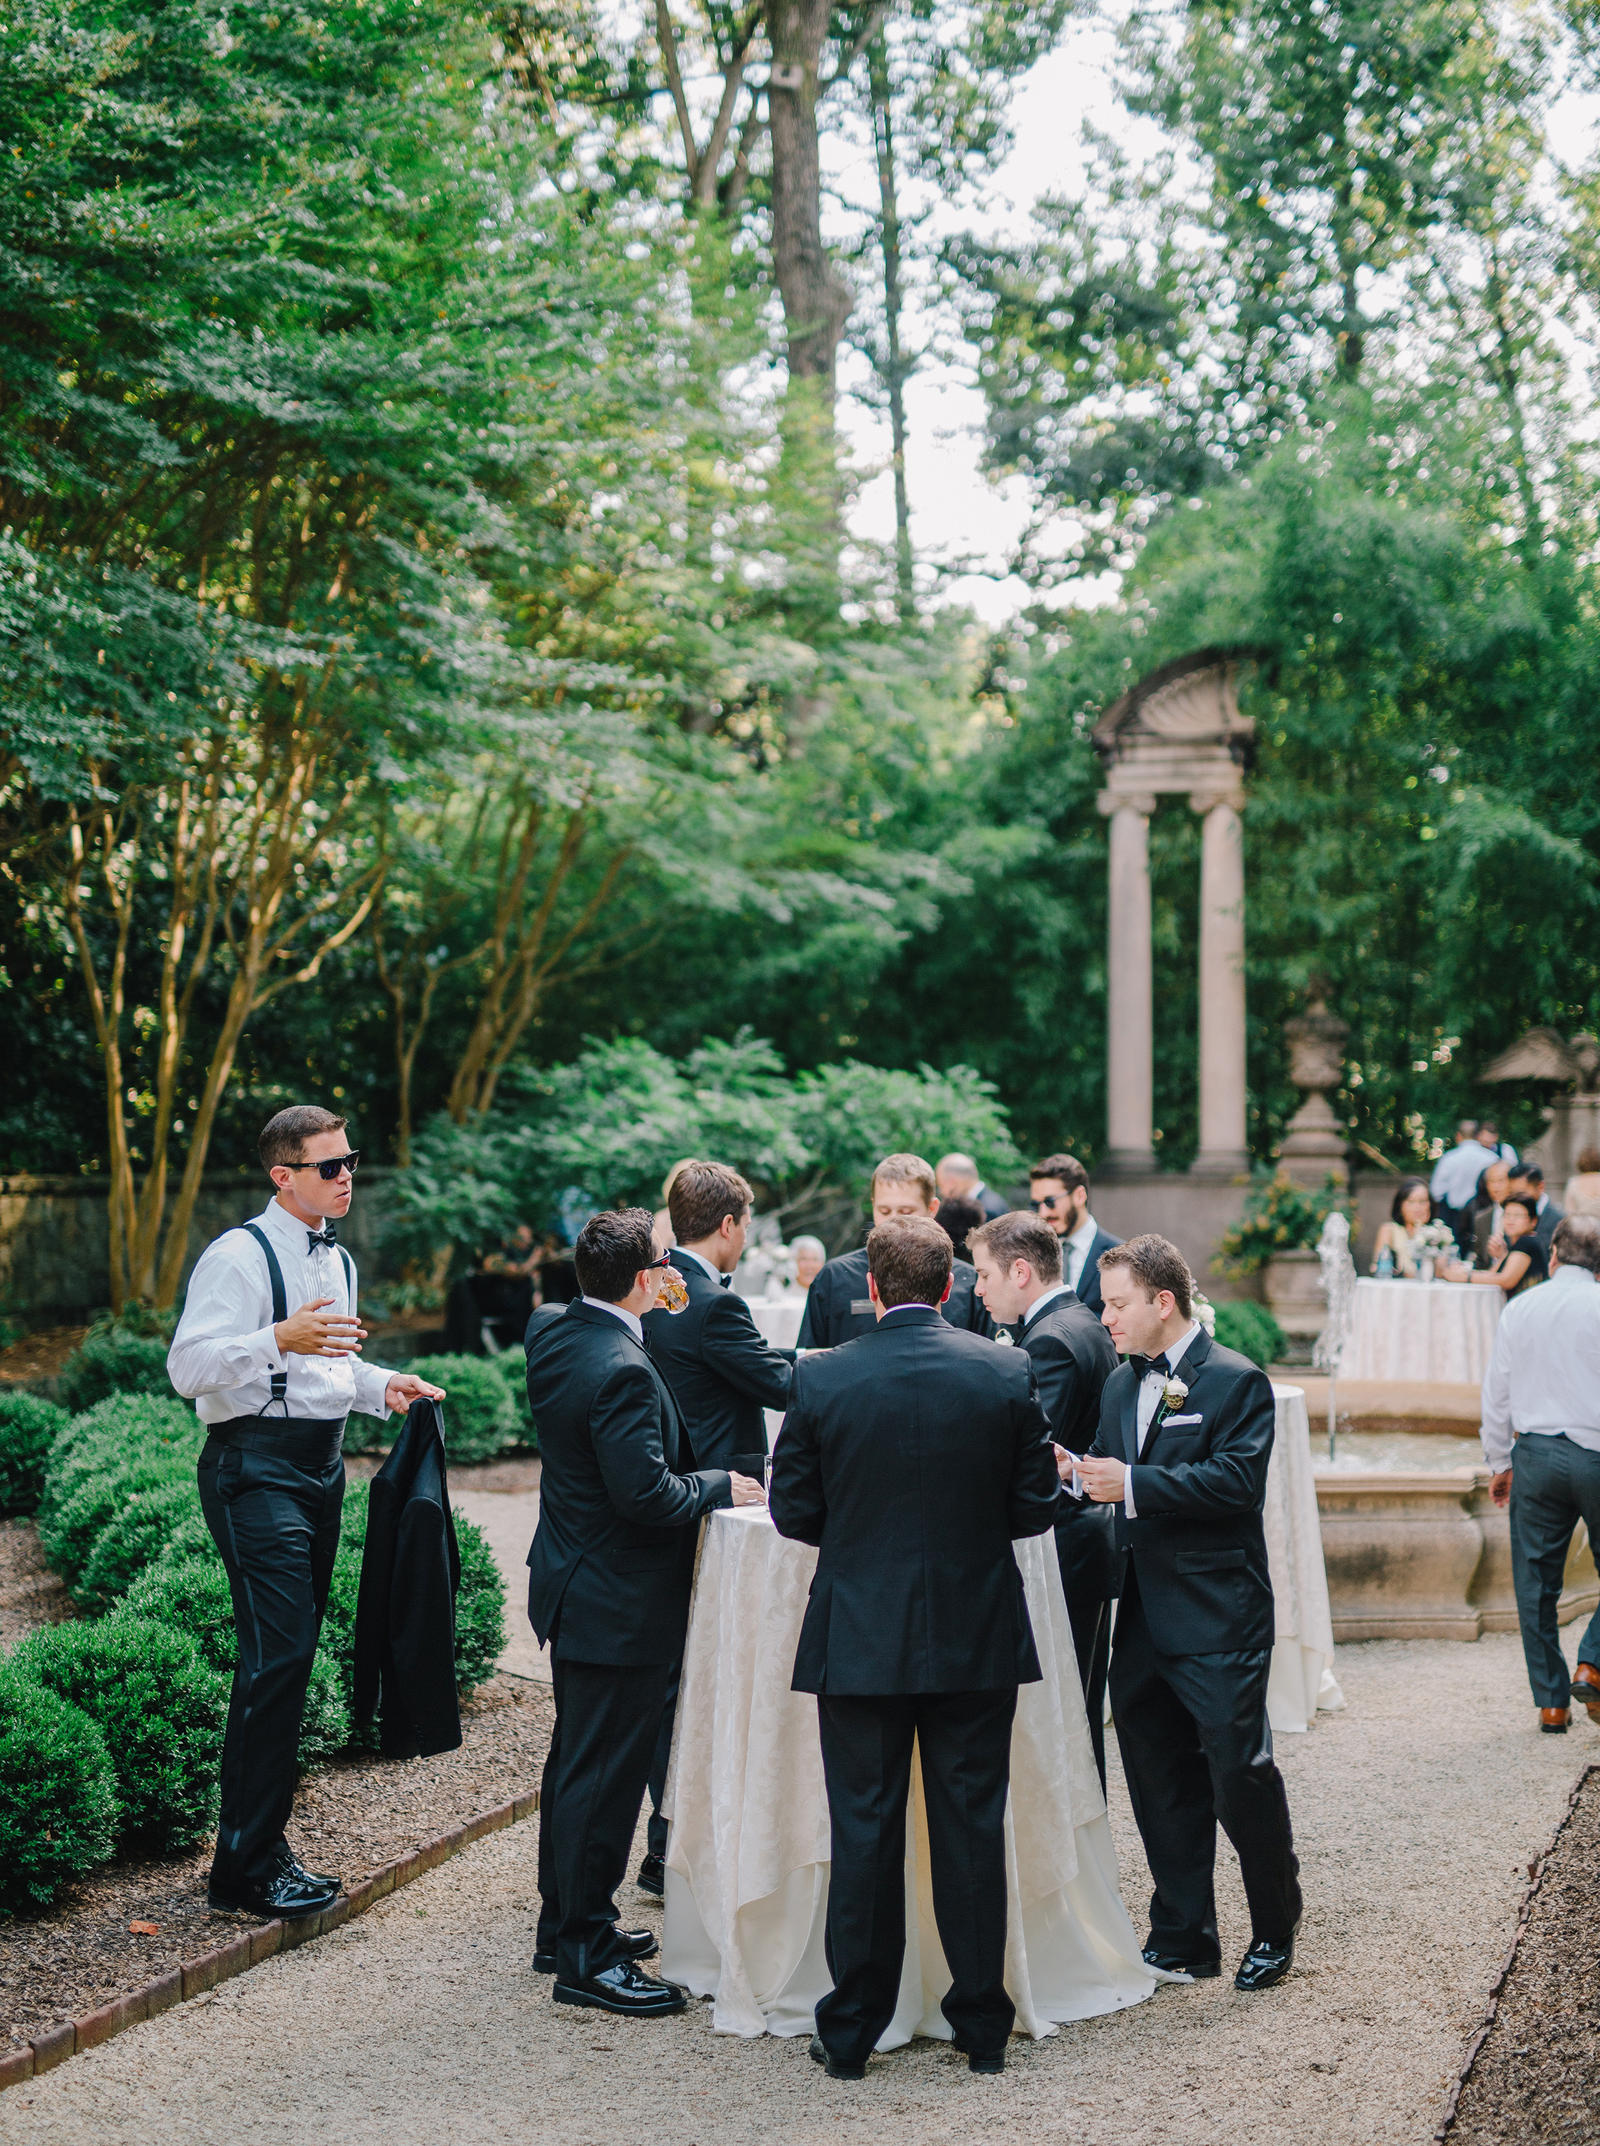 Wedding Photography | Groomsmen at an outdoor recption.